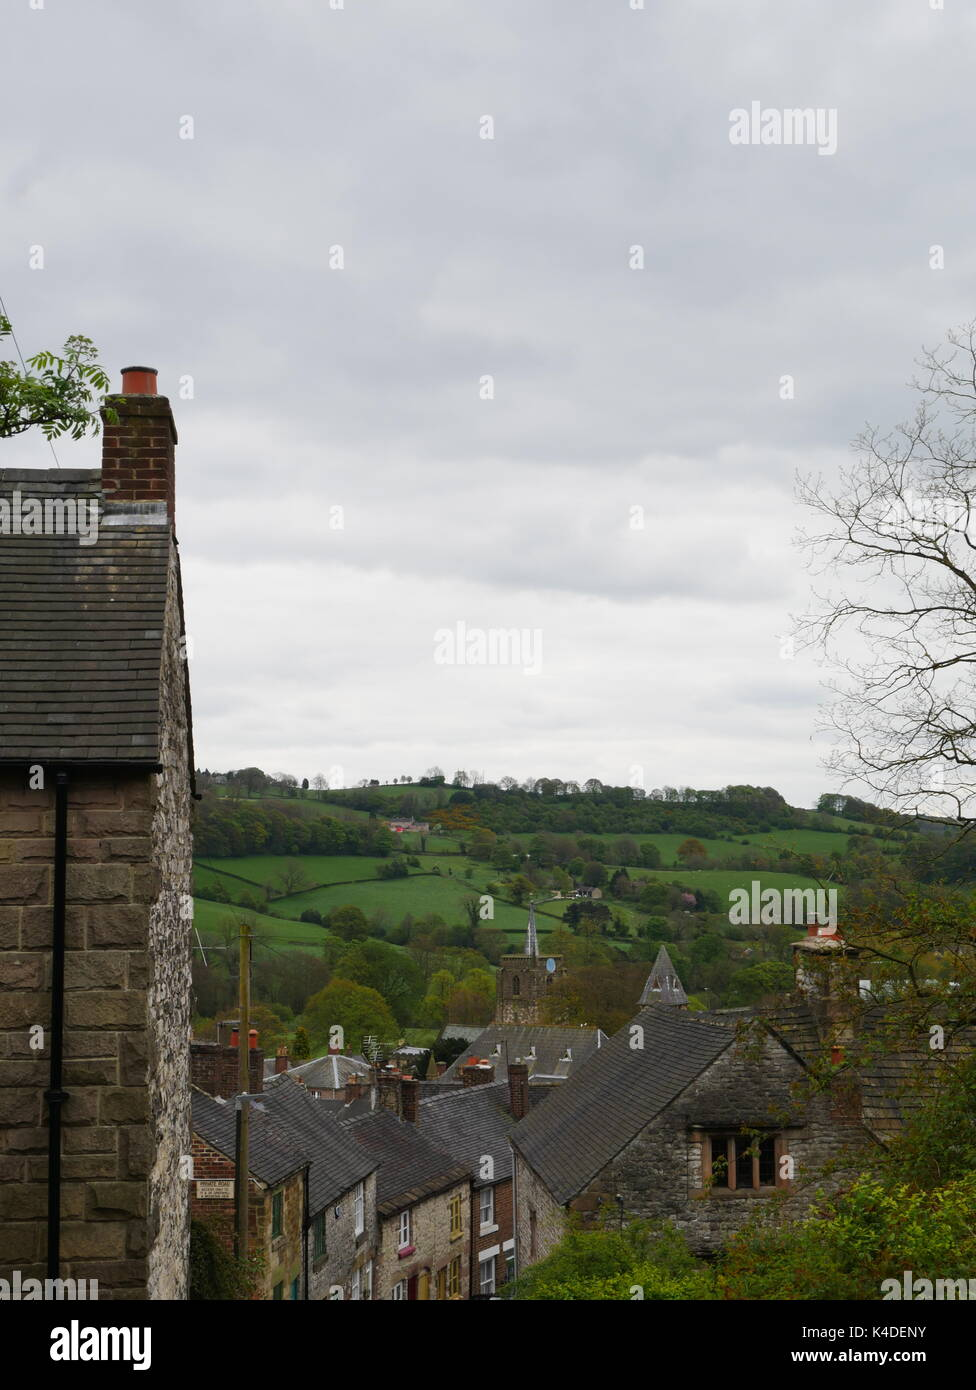 A view of the rooftops in the market town of Wirksworth, Derbyshire Dales - Stock Image